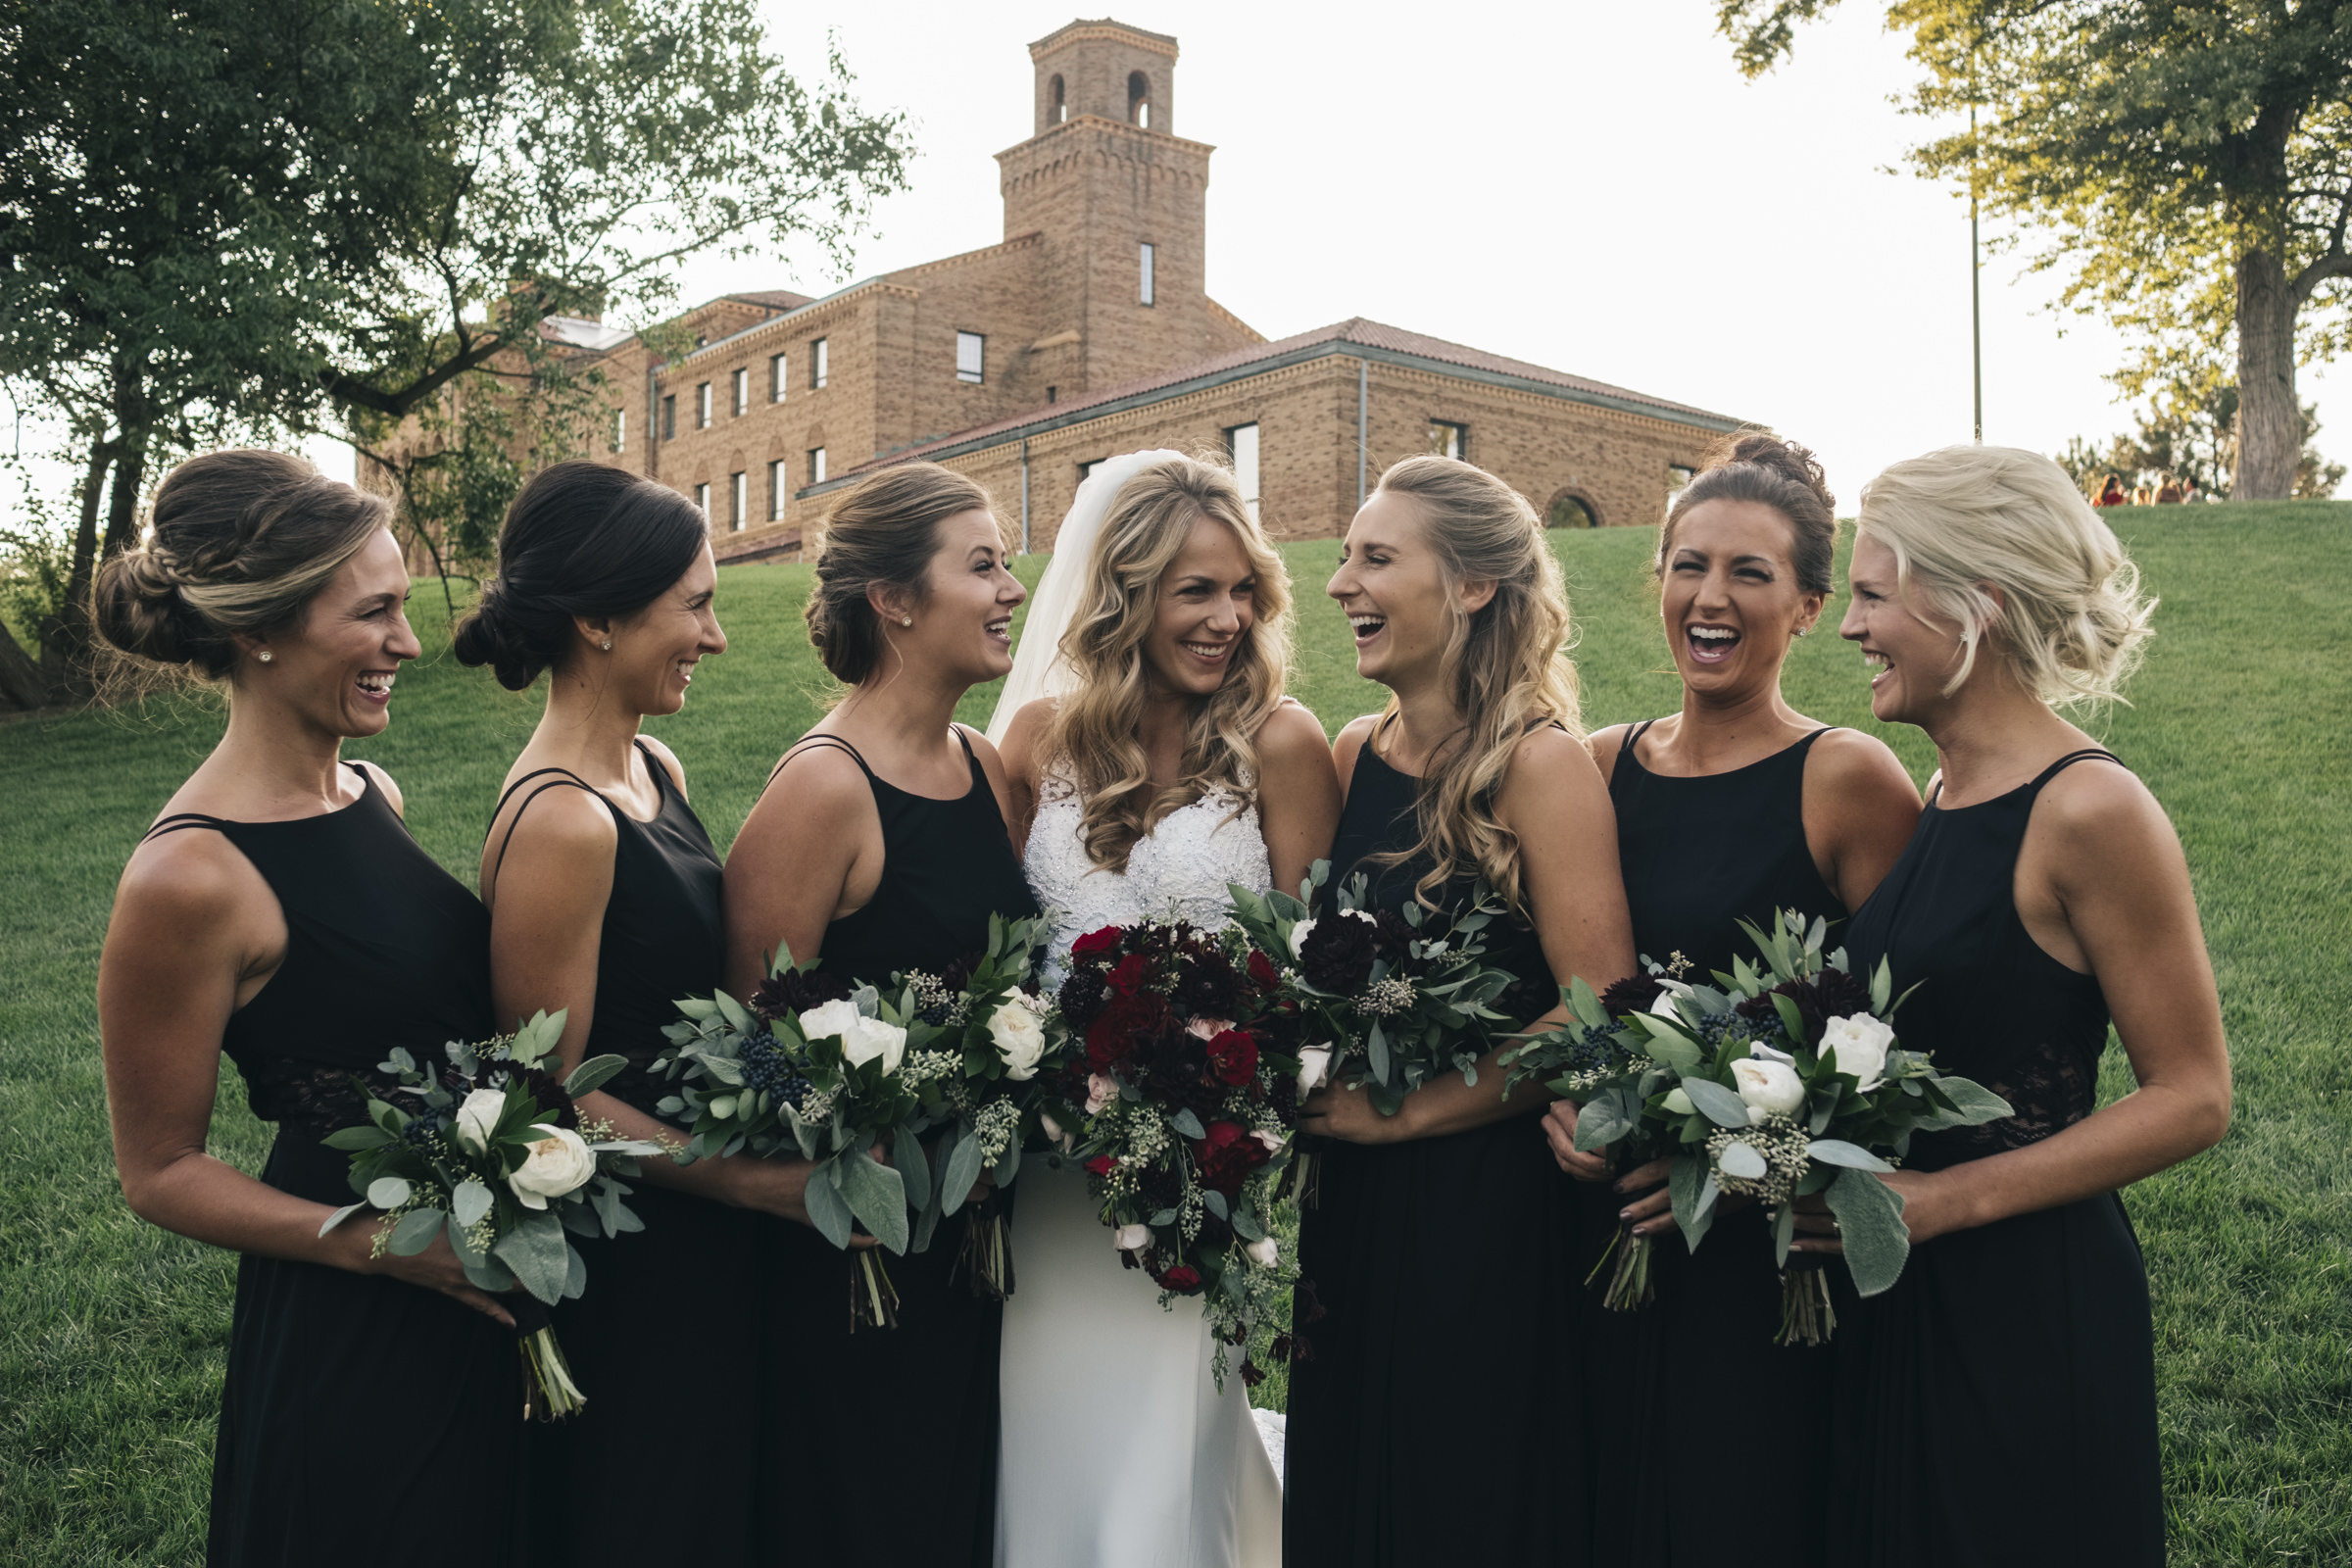 Bridesmaids laugh with the bride during her wedding during in navy blue dresses and beautiful florals